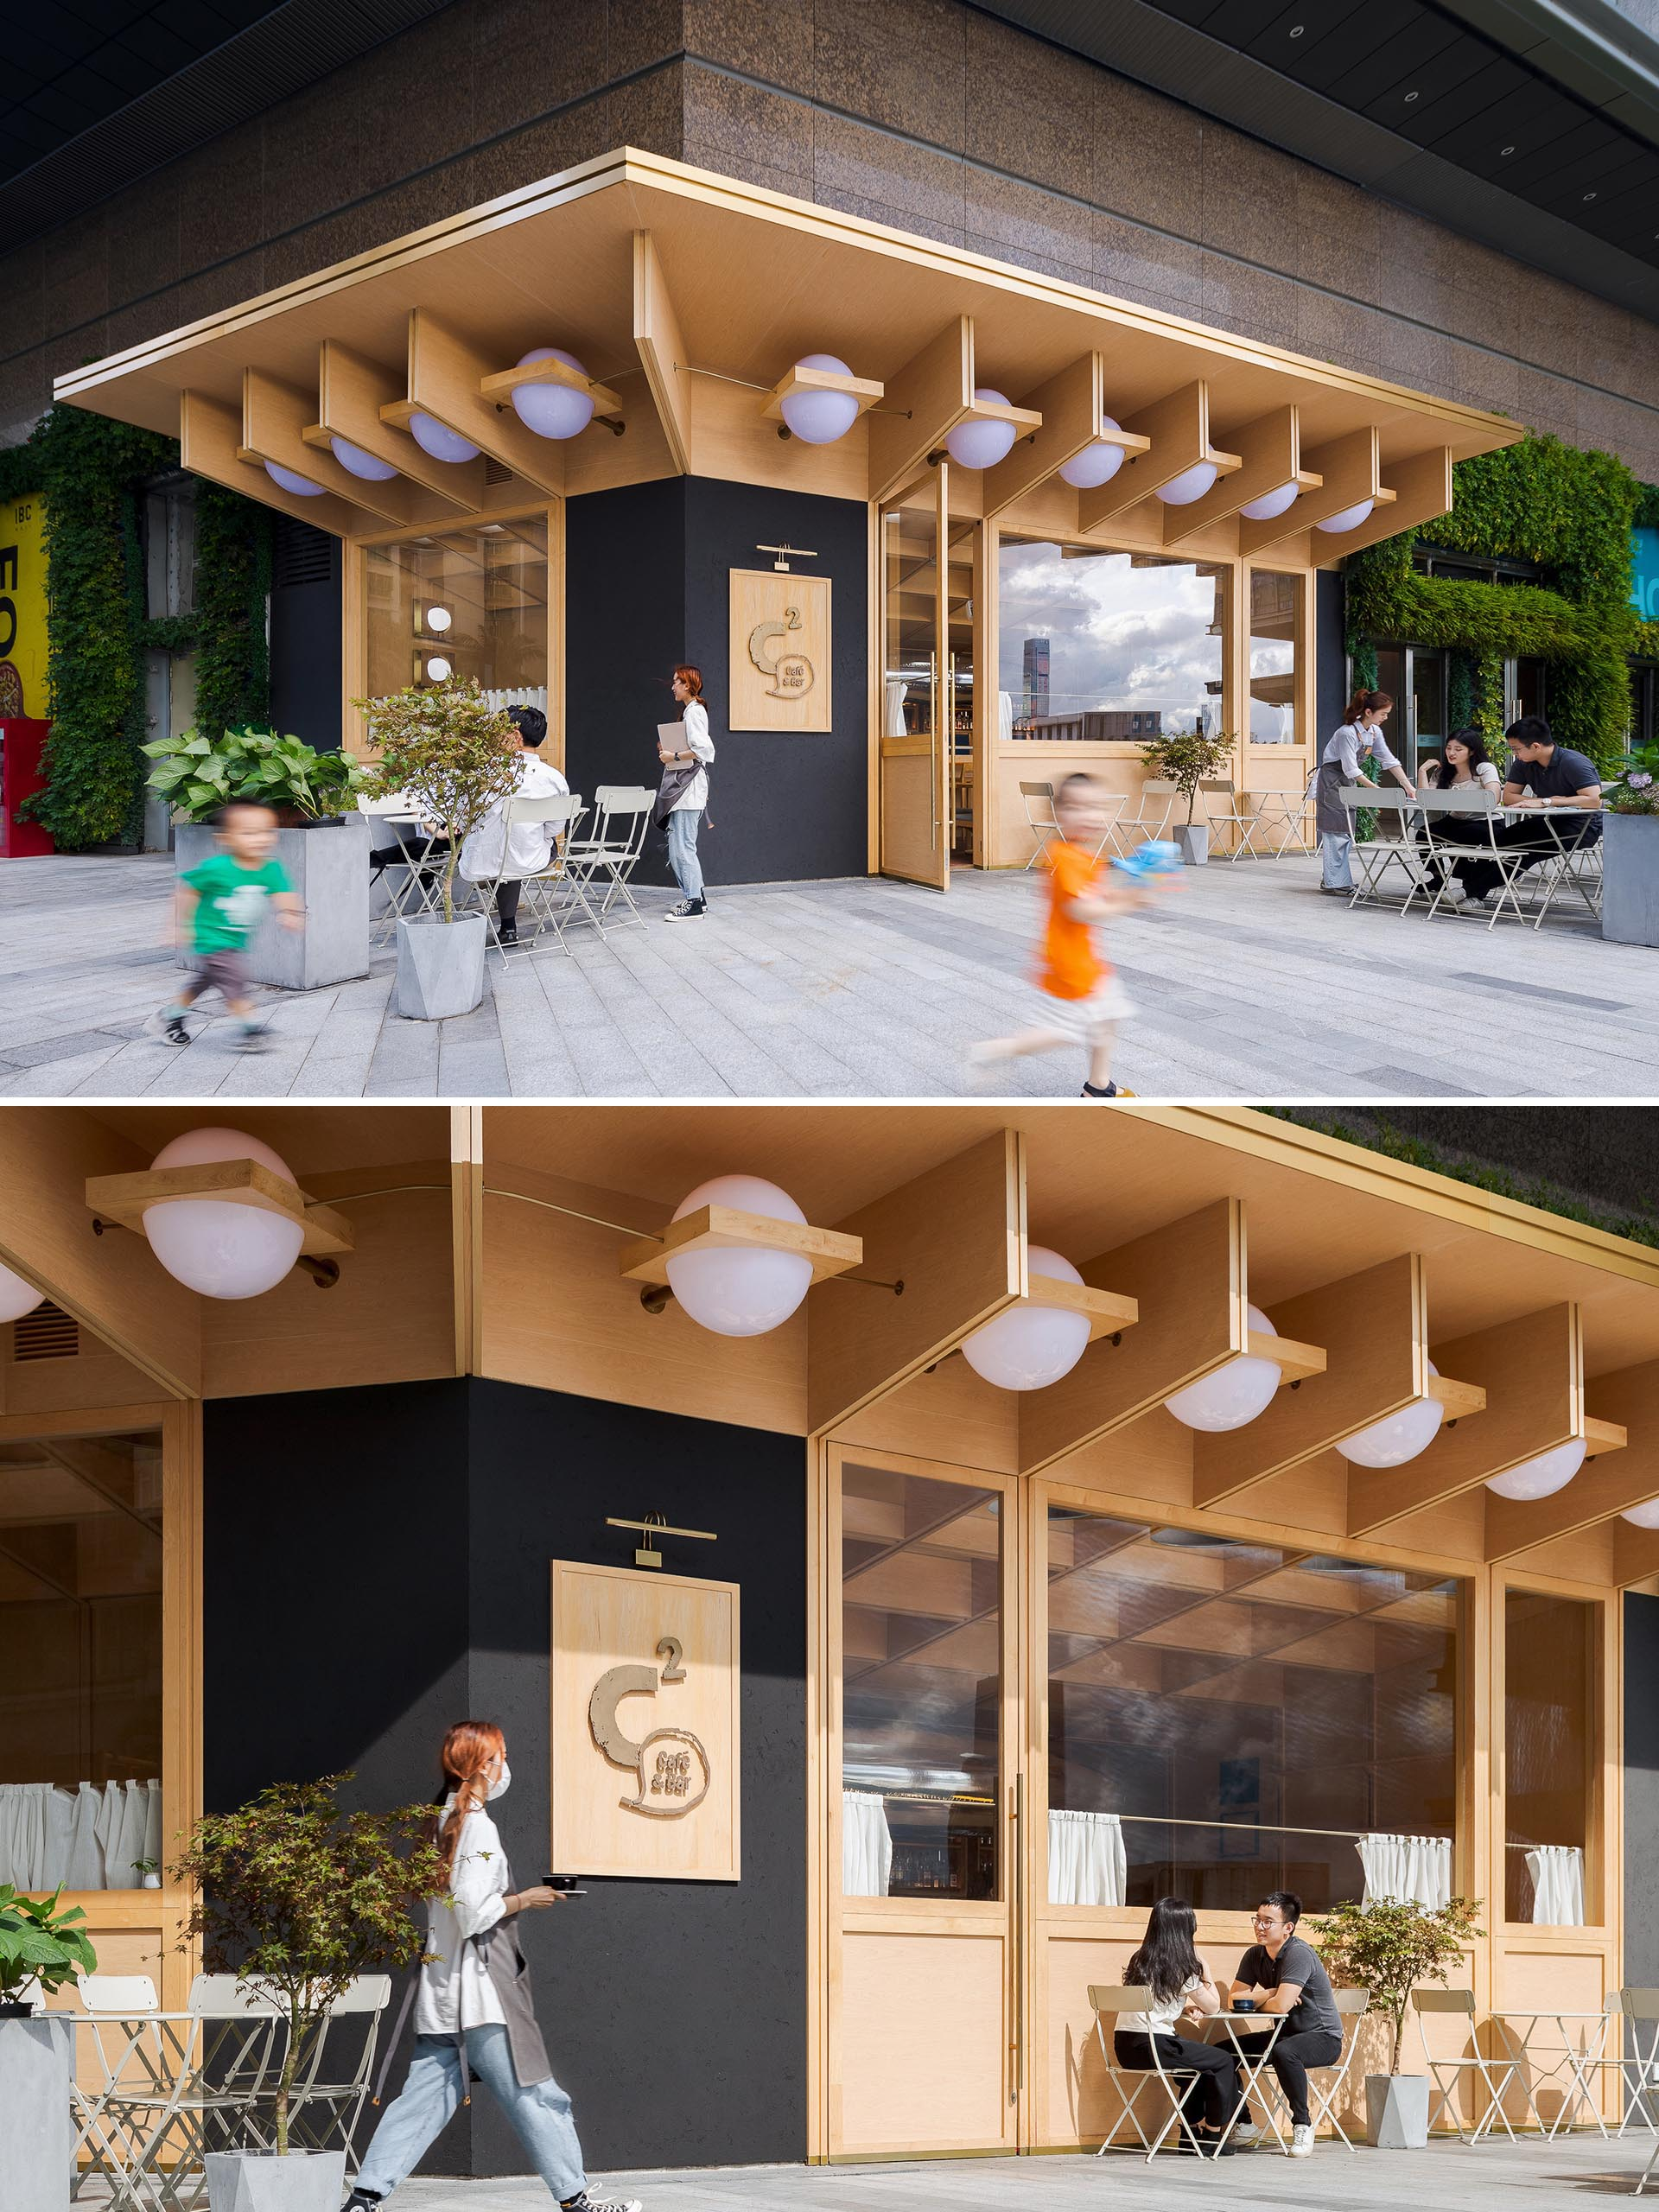 A modern cafe and bar with a wood exterior and outdoor seating.